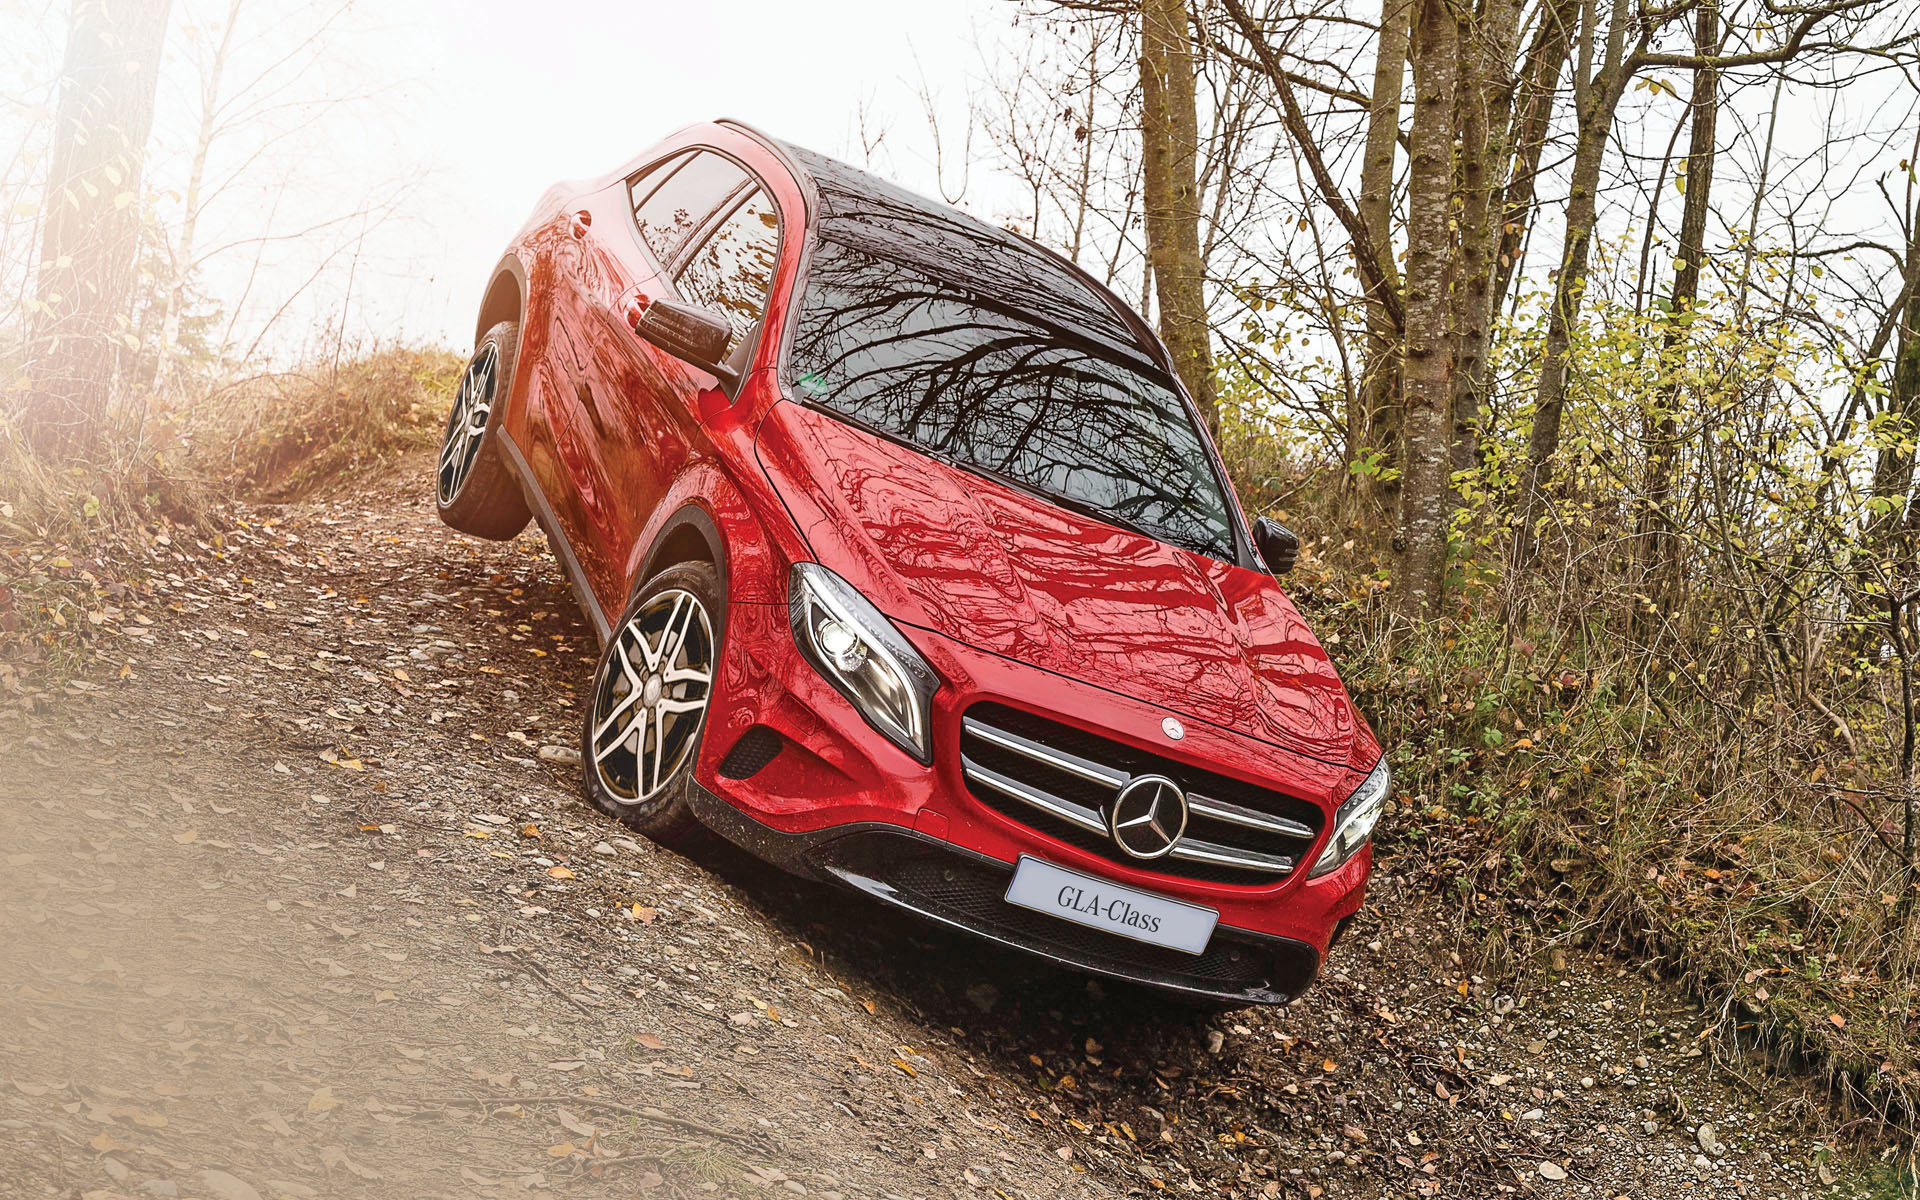 Mercedes Benz Gla 200 Photos Images And Wallpapers